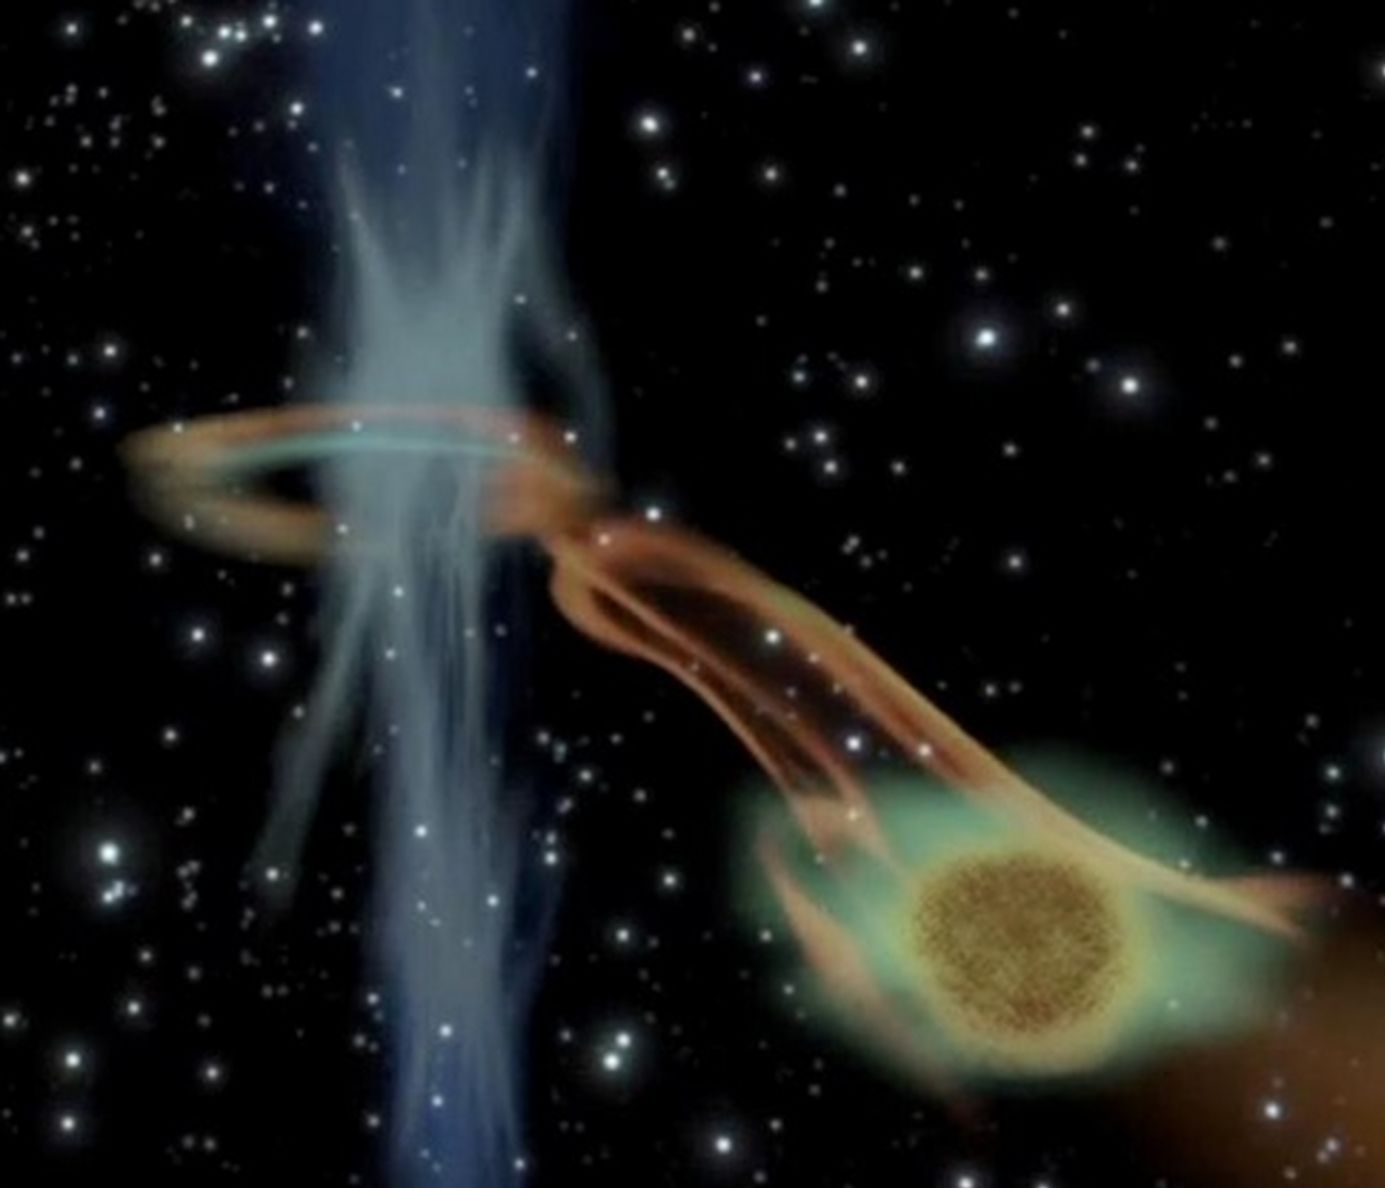 In a cosmic first, astronomers have discovered a black hole chowing down on what may be a rogue 'super Jupiter' planet.